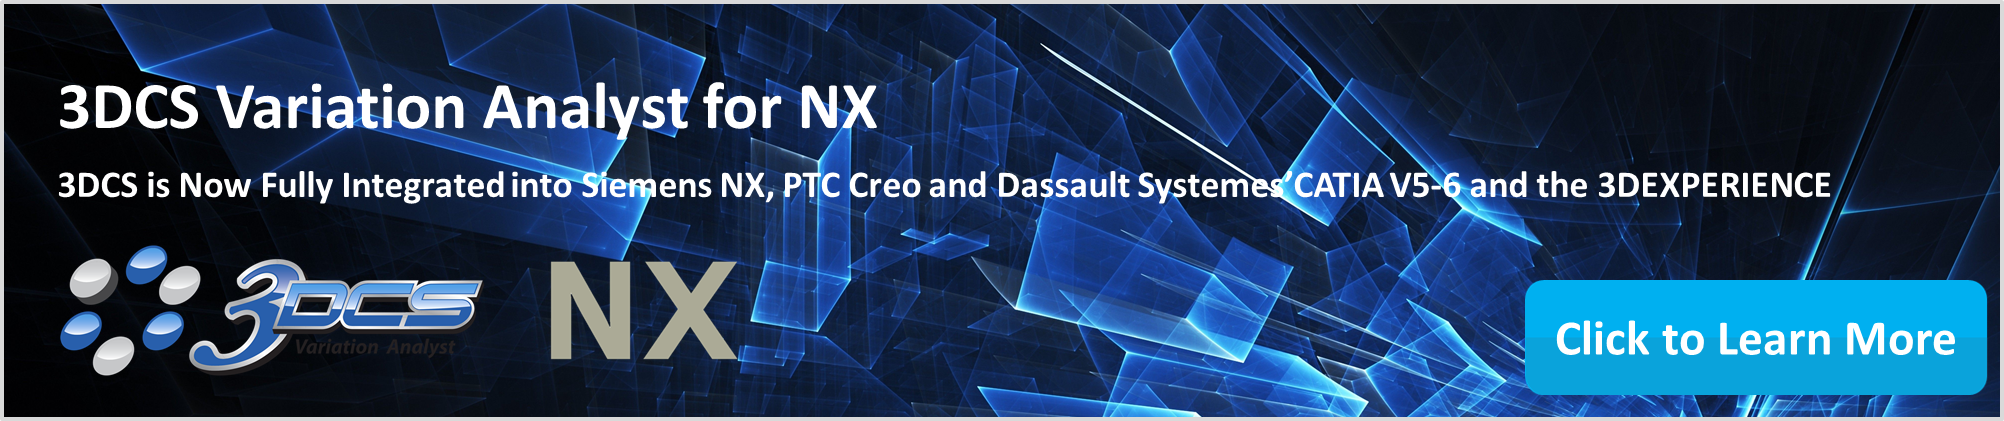 Watch the 3DCS for NX Webinar On Demand to see first hand